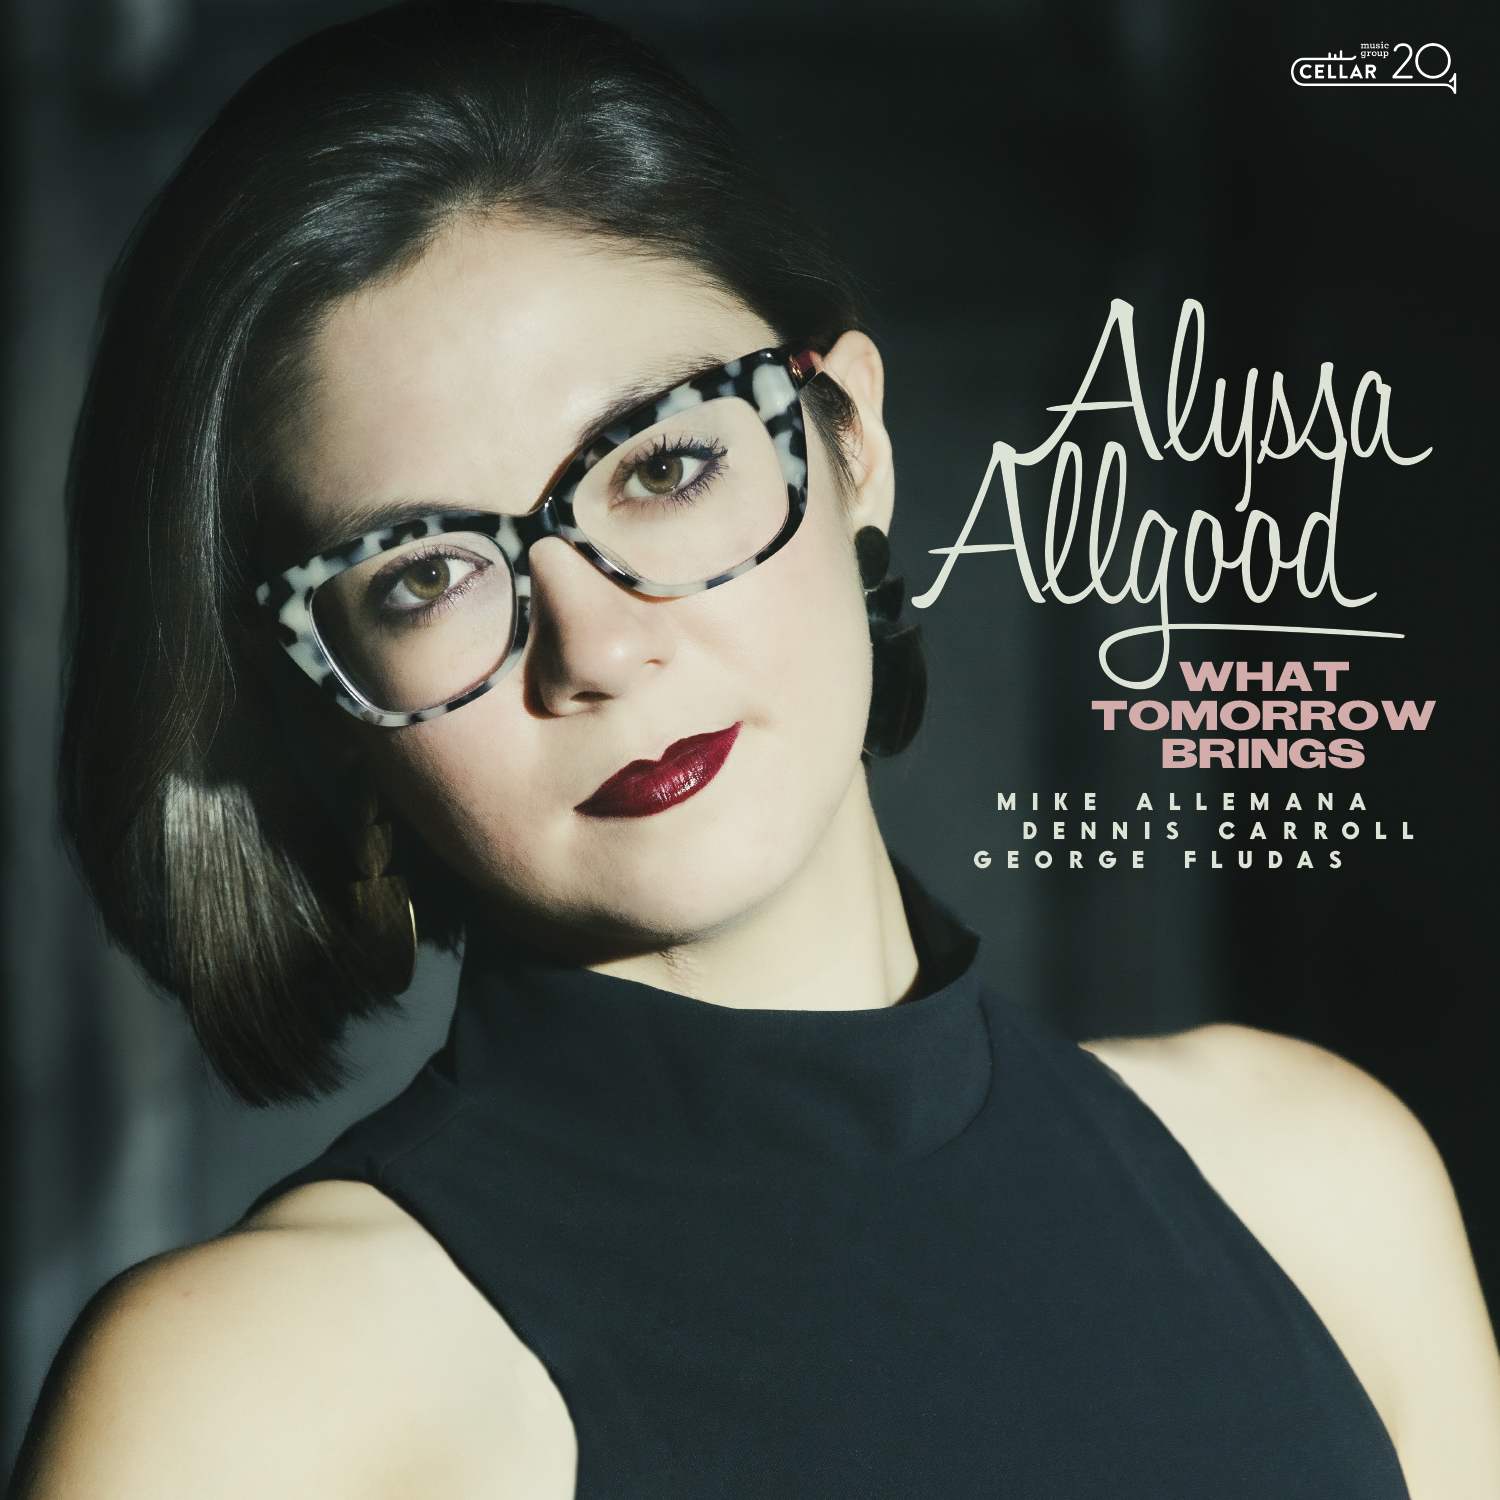 REVIEW: Alyssa Allgood's 'What Tomorrow Brings' – All About Jazz